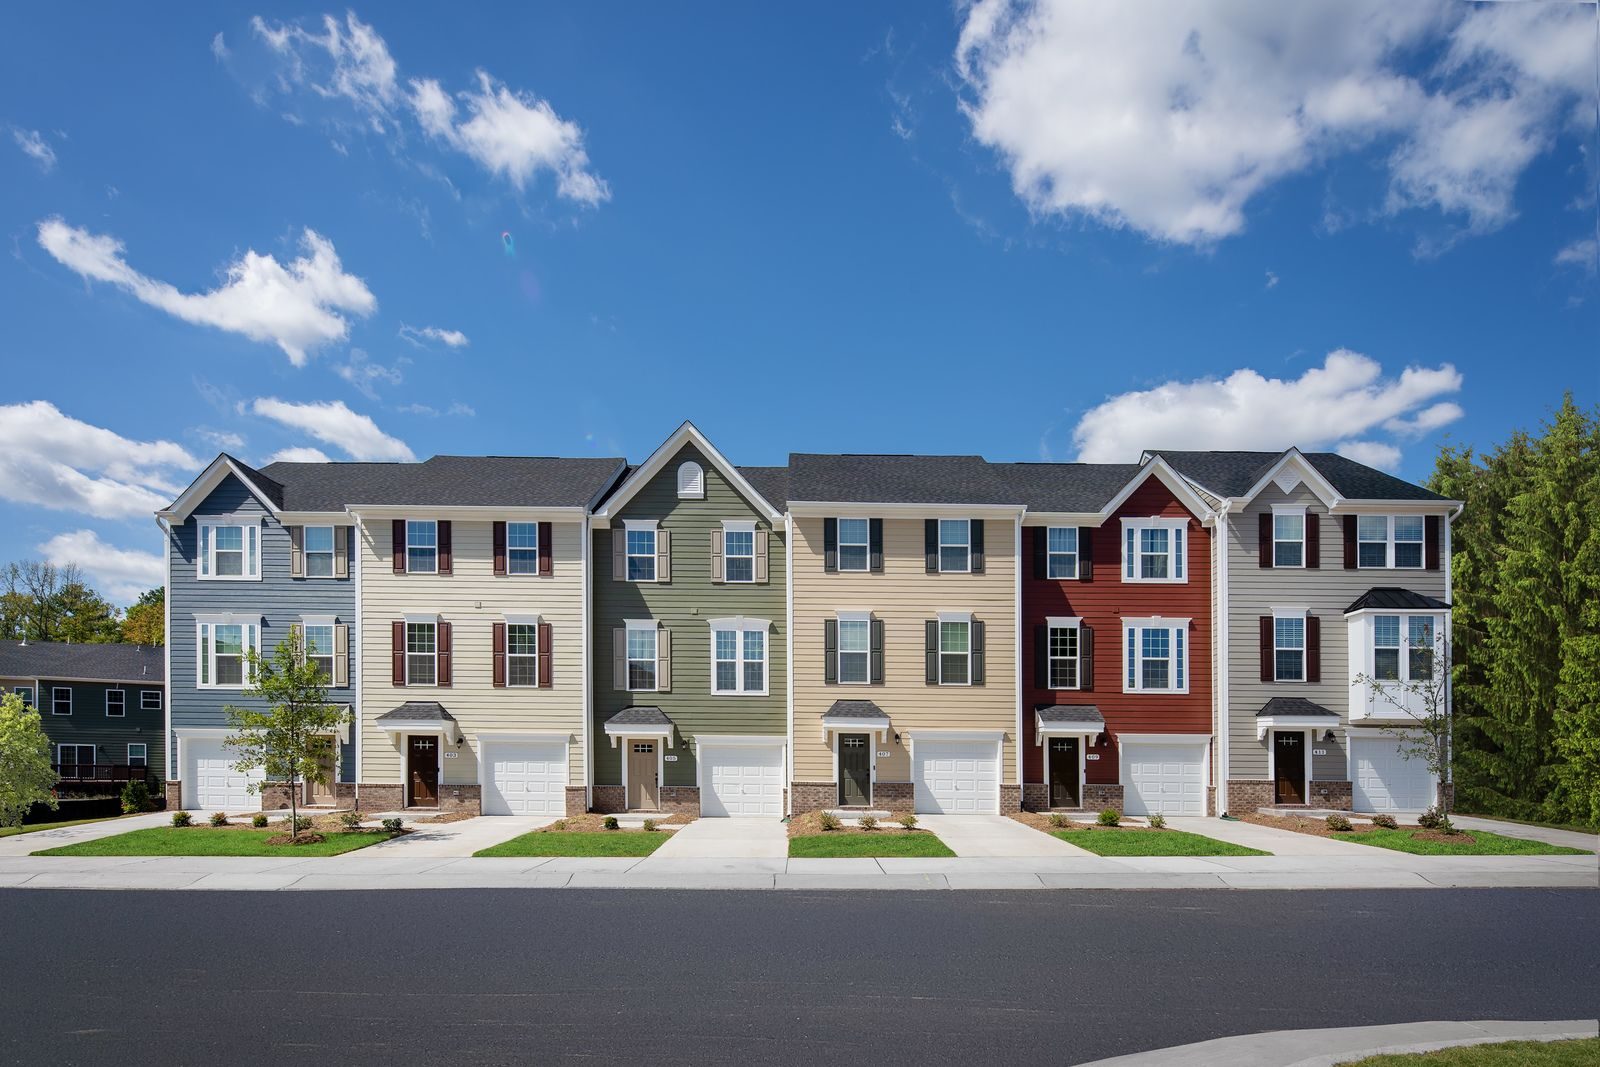 Community amenities include pool & clubhouse, walking trails, park, and no yard work. PLUS, Schedule your visitto secure our FINAL townhome and receive $2,000 toward closing costs for a limited time!